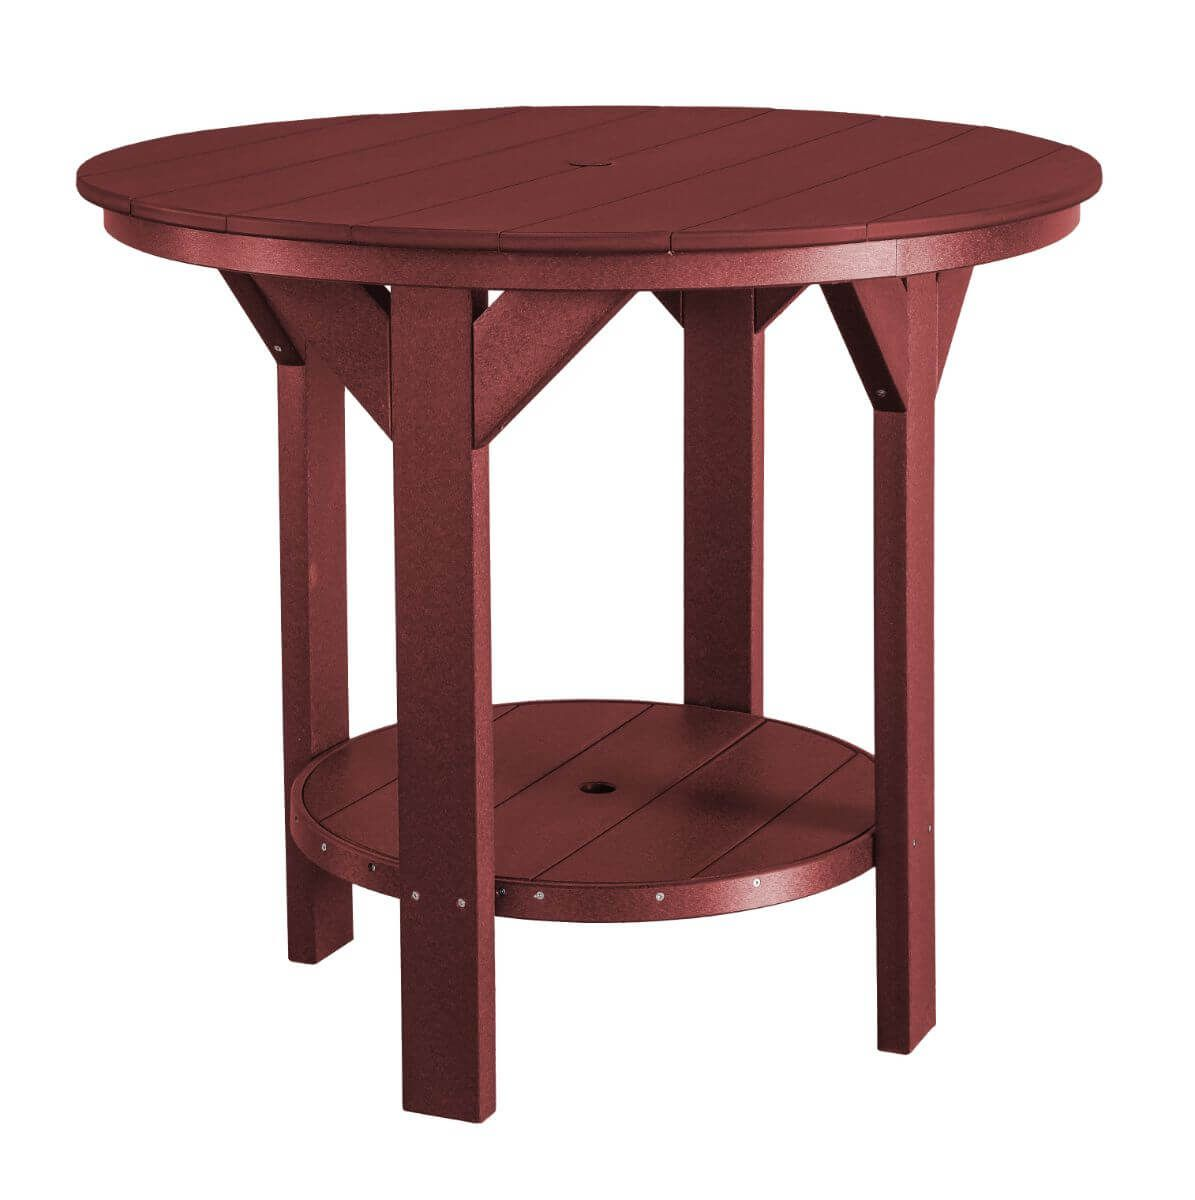 Cherry Wood Sidra Outdoor Pub Table